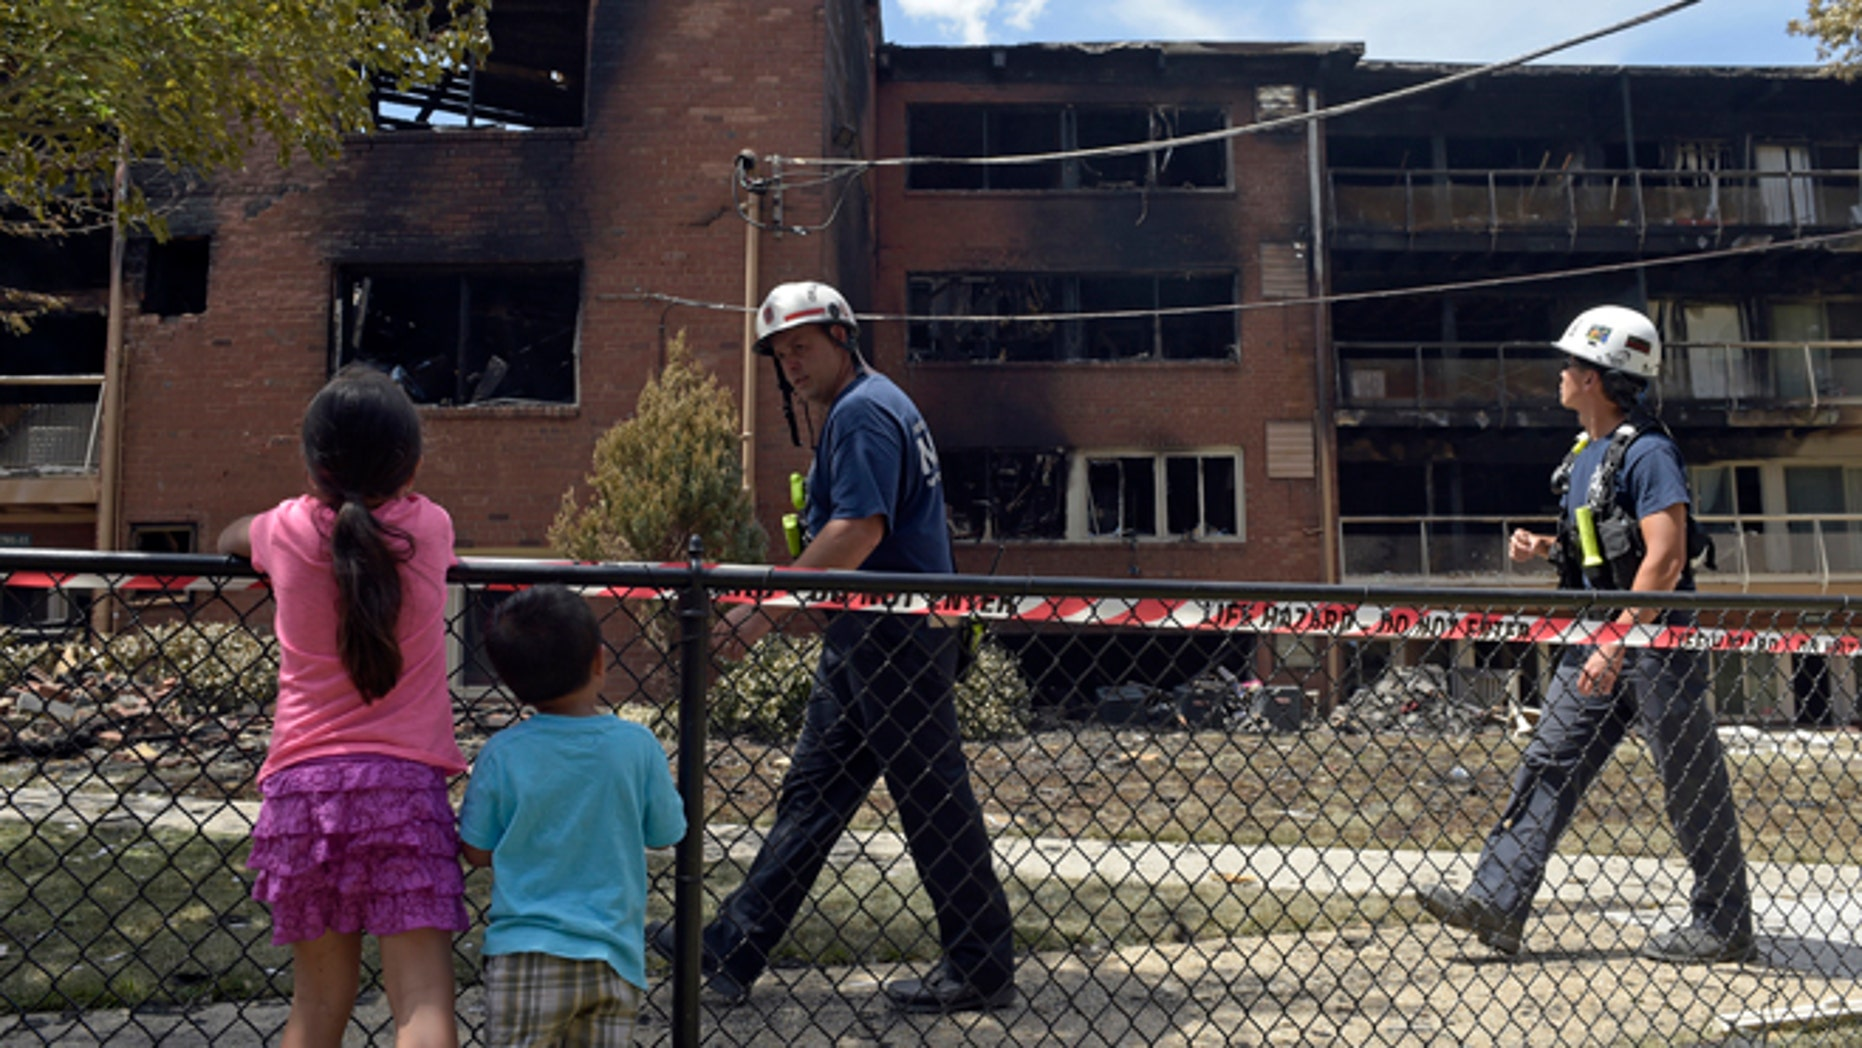 People view the scene of an apartment building fire in Silver Spring, Md., Thursday, Aug. 11, 2016.